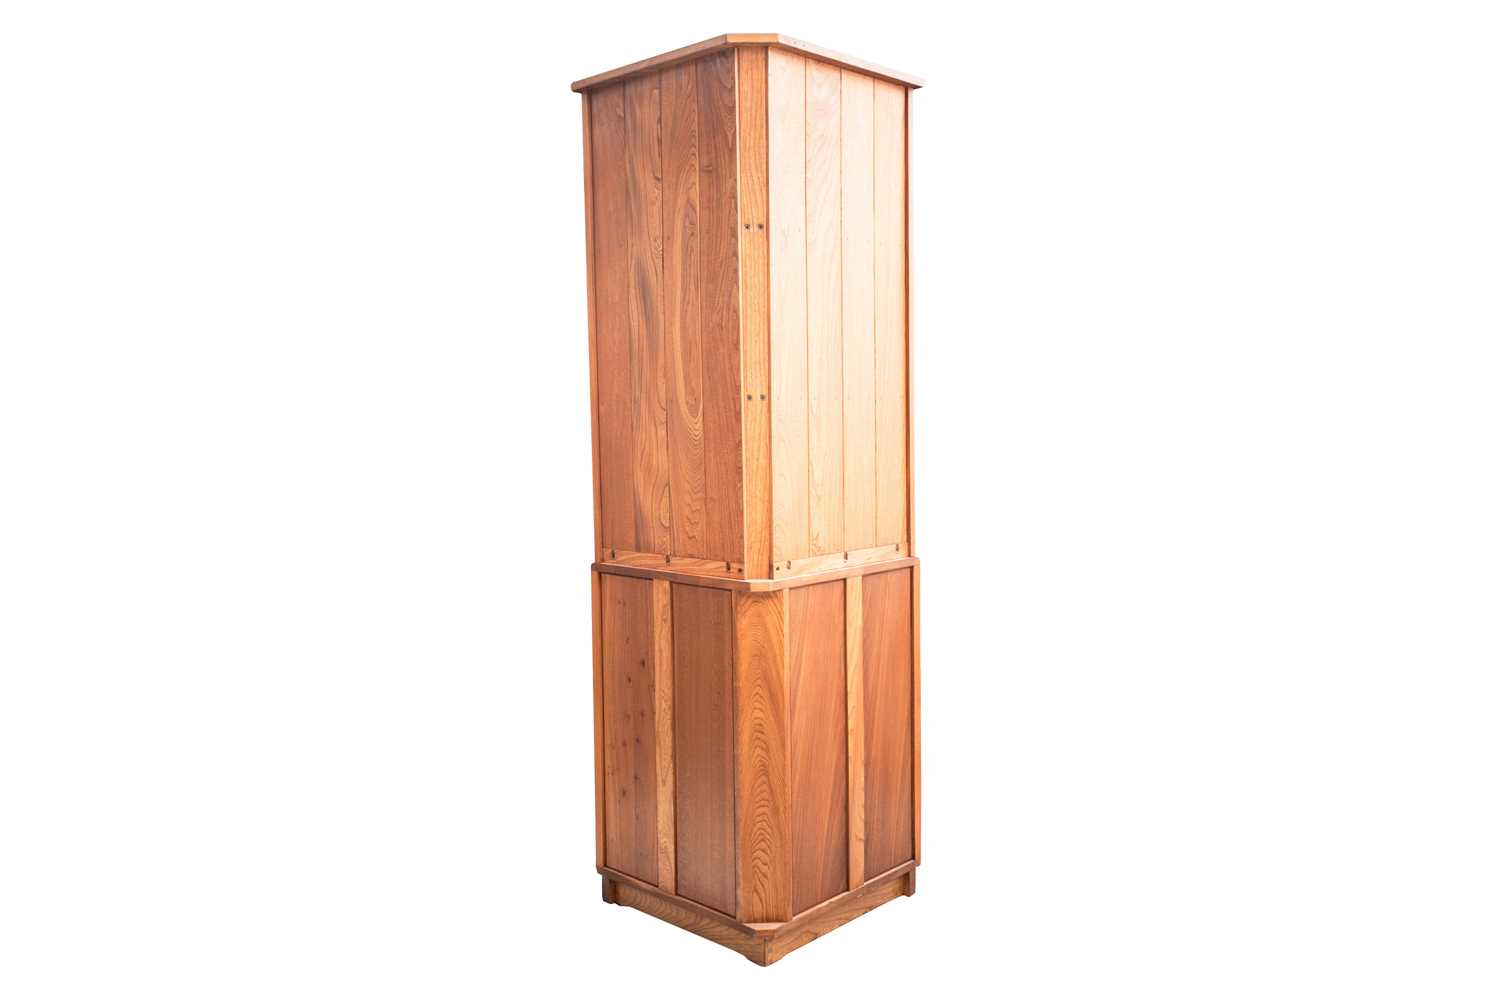 An Ercol golden dawn light elm free standing corner cupboard with an open upper section above a - Image 5 of 8